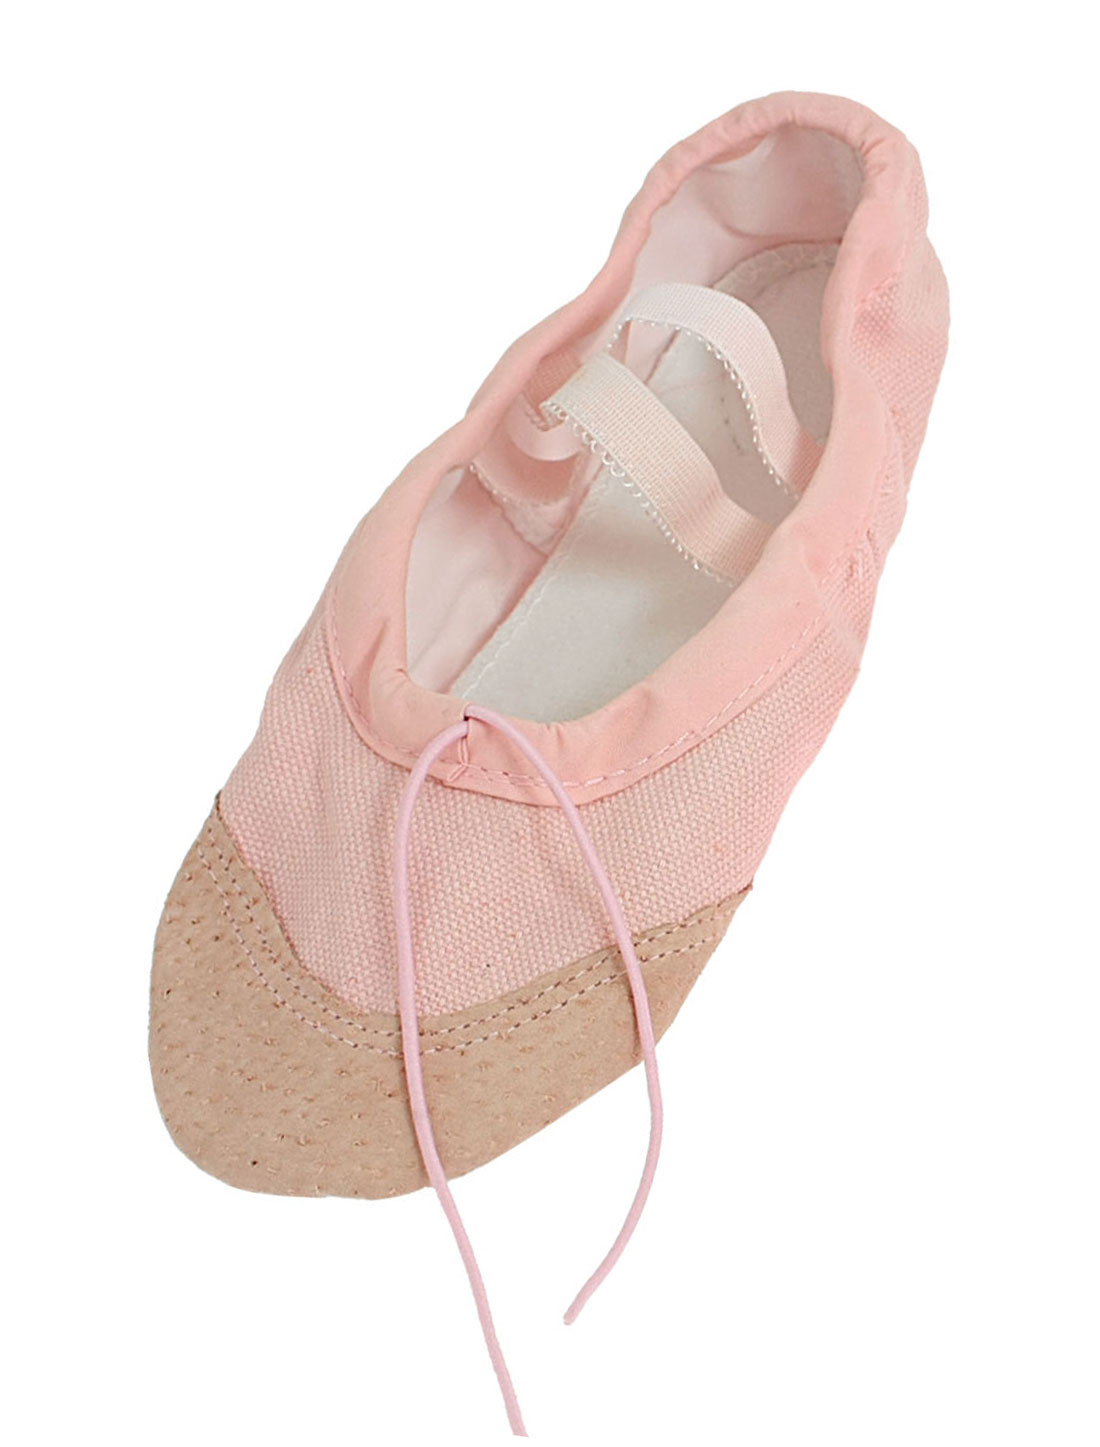 EU 35 Pink Drawstring Top Split Sole Canvas Ballet Shoes for Girls